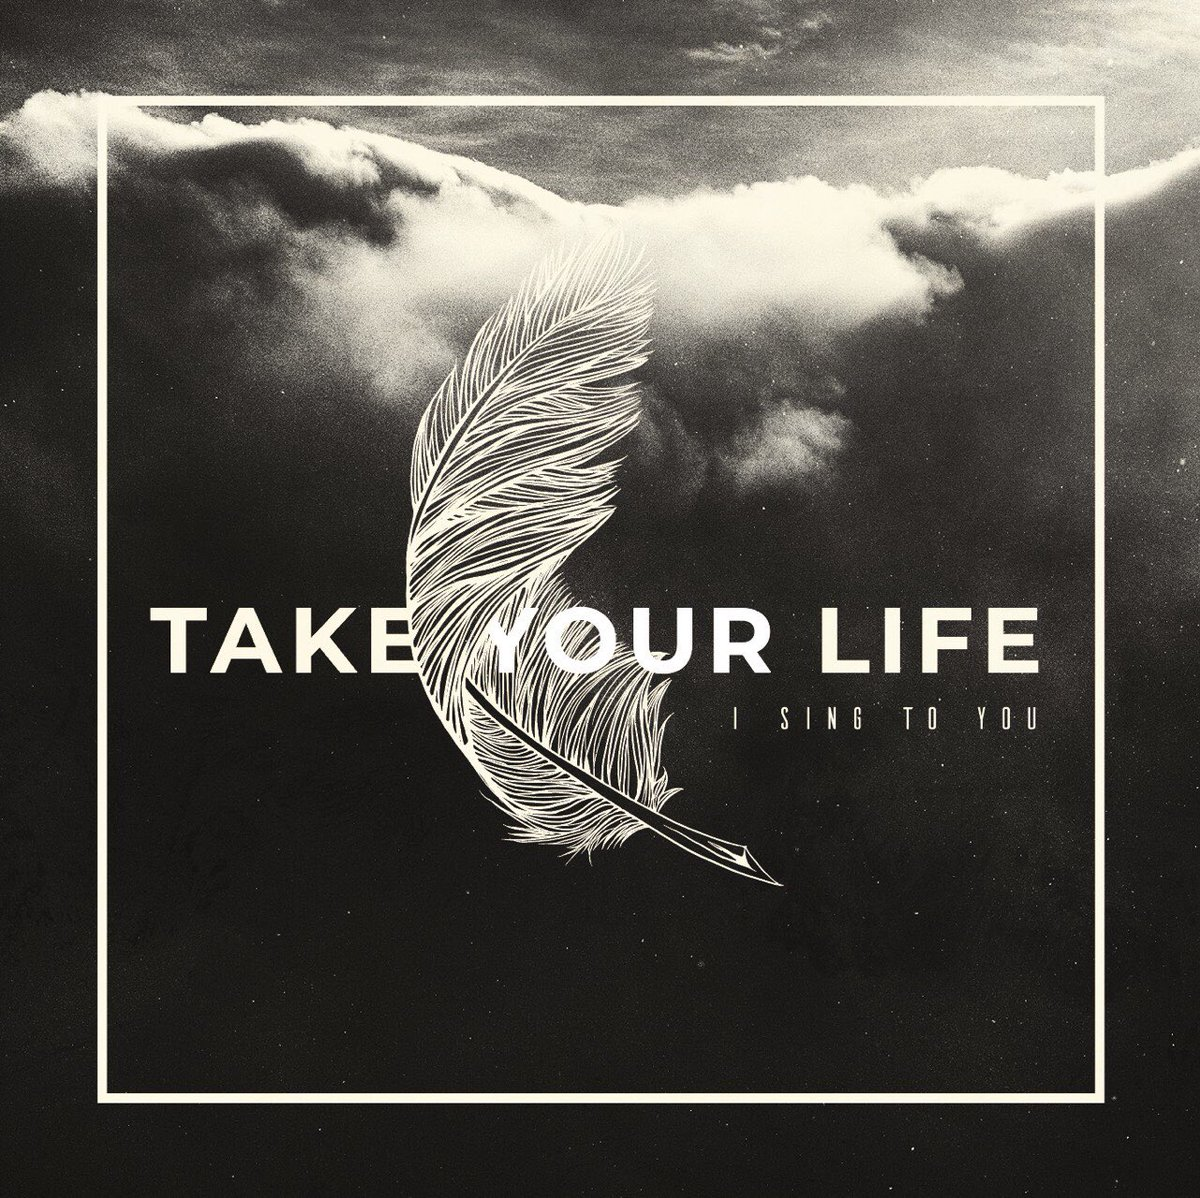 TAKE YOUR LIFE「I SING TO YOU」